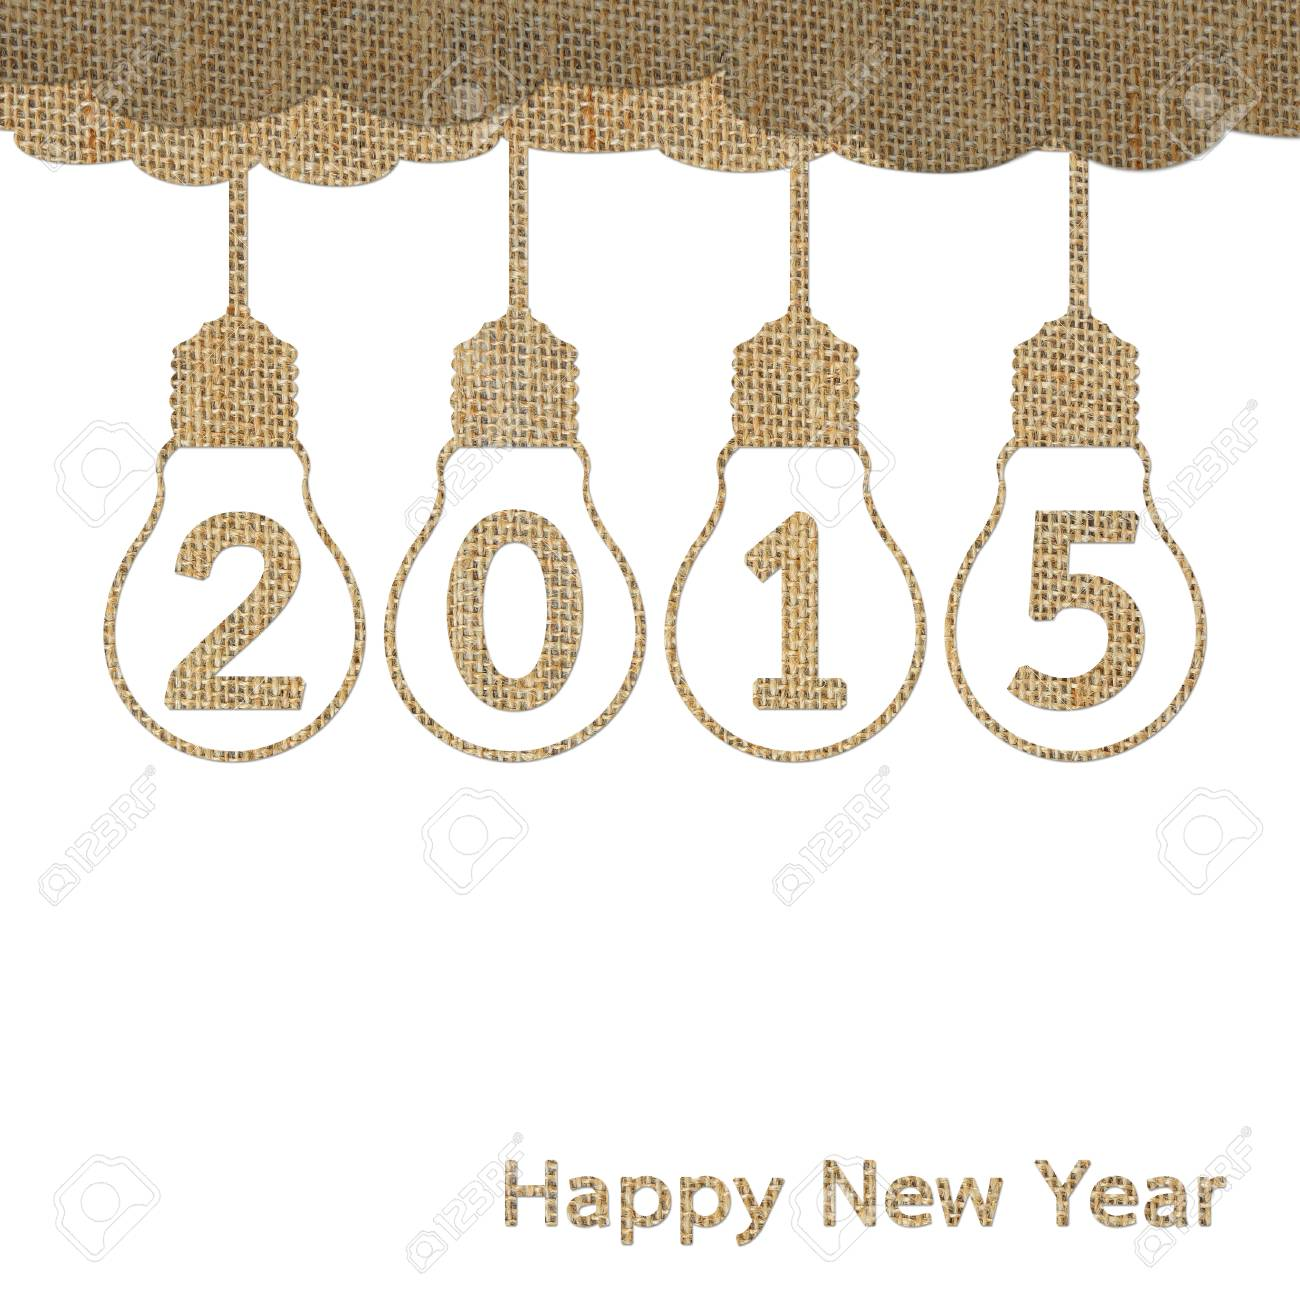 Burlap Happy New Year 2015 For Creative Greeting Card Design Stock